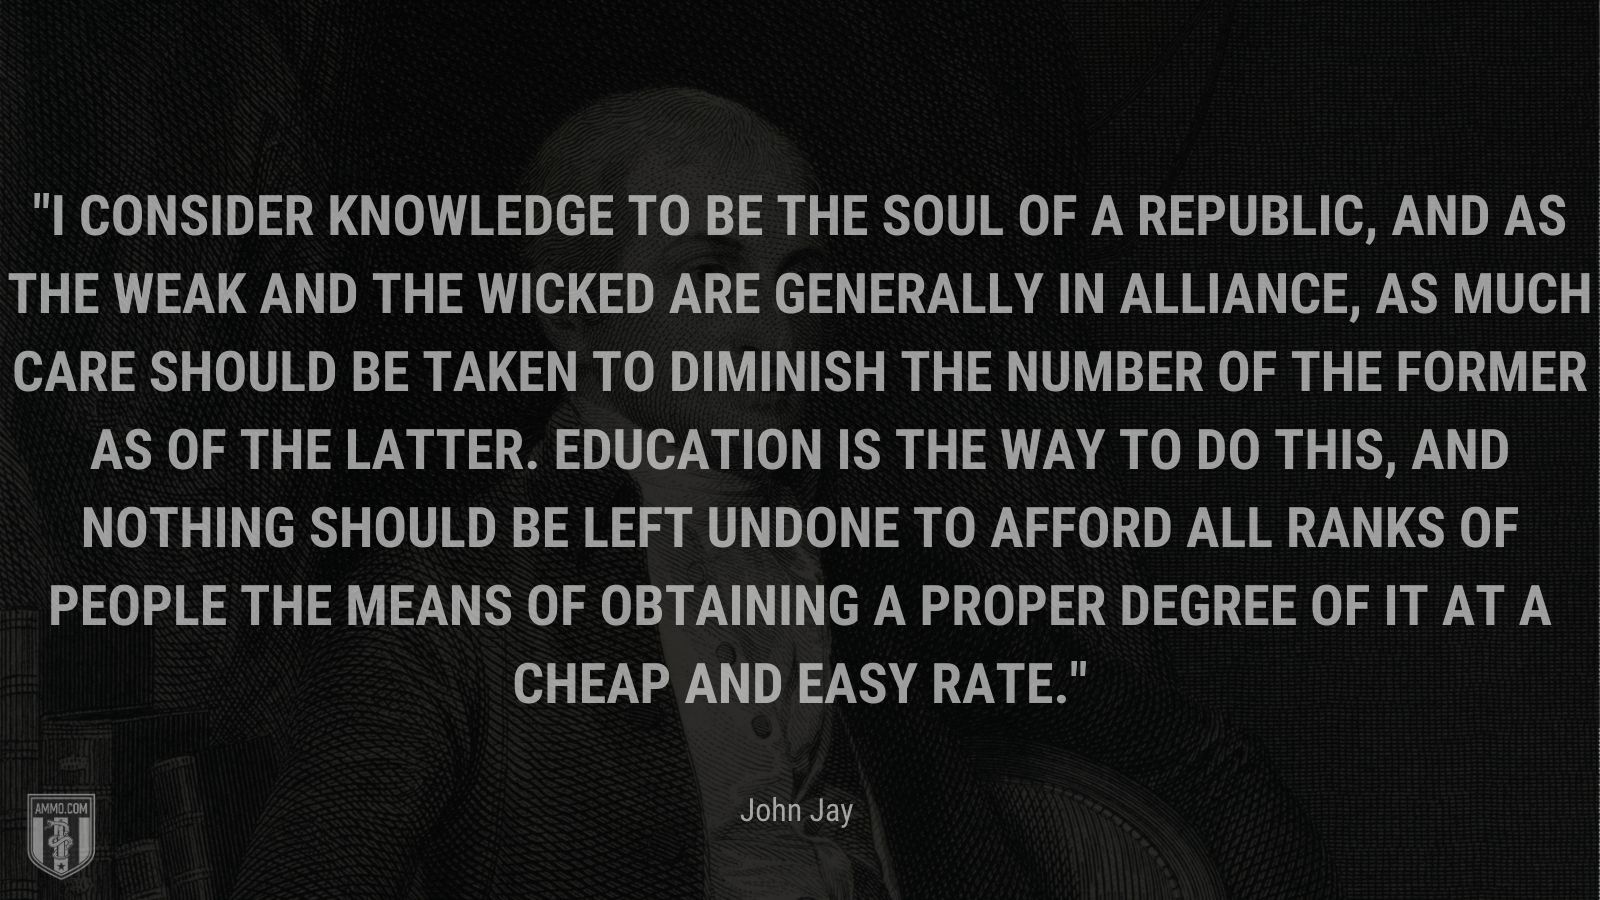 """""""I consider knowledge to be the soul of a republic, and as the weak and the wicked are generally in alliance, as much care should be taken to diminish the number of the former as of the latter. Education is the way to do this, and nothing should be left undone to afford all ranks of people the means of obtaining a proper degree of it at a cheap and easy rate."""" - John Jay"""